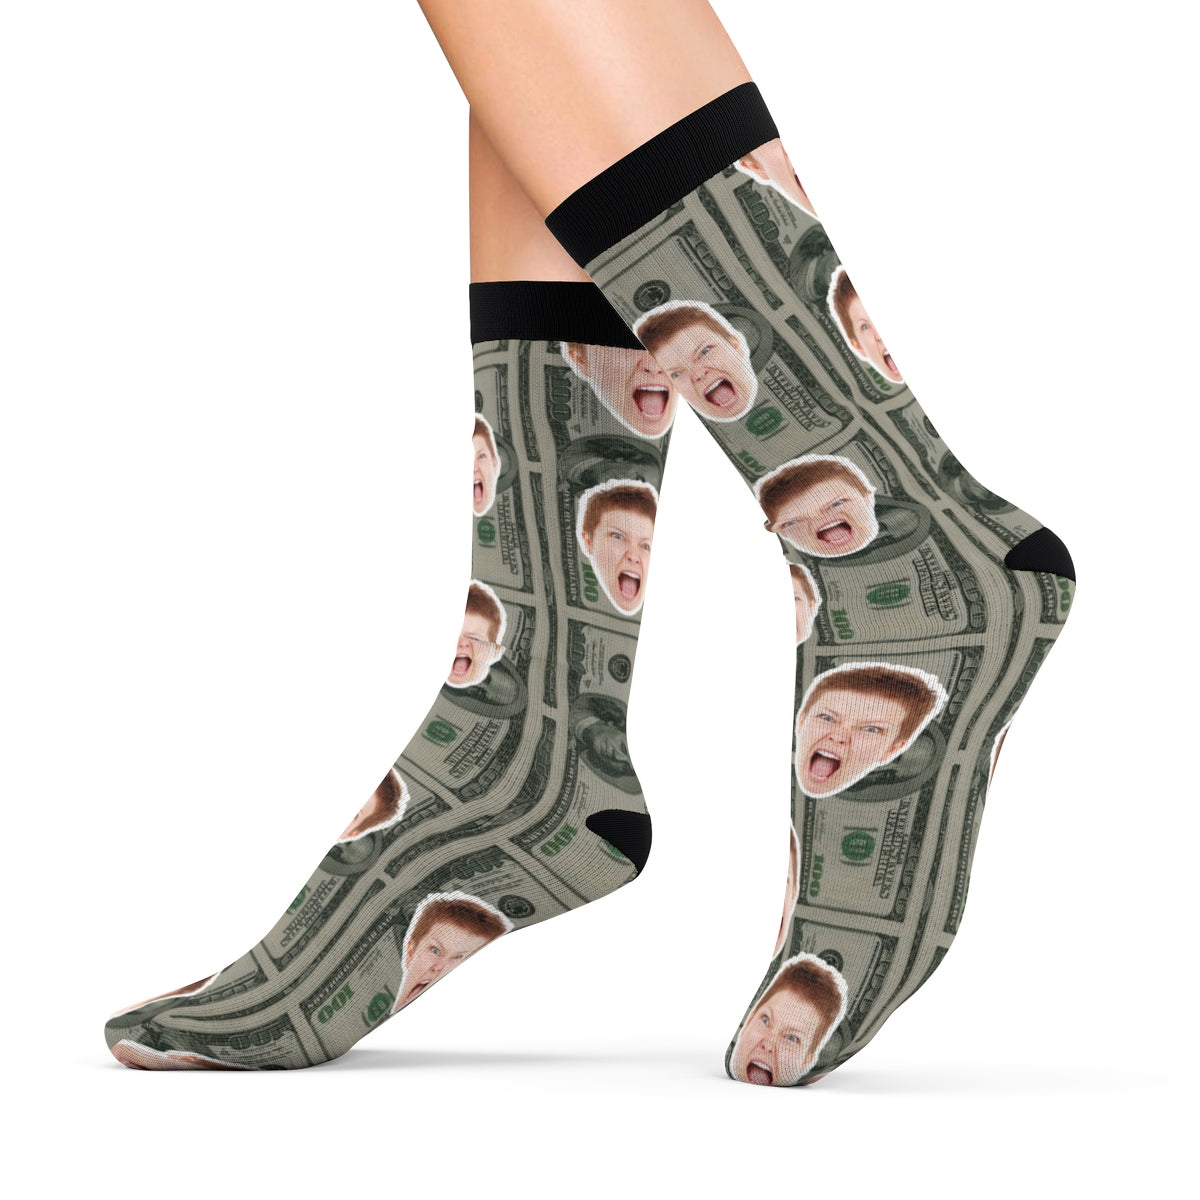 Funny Dollar Socks With Your Face Personalized Socks